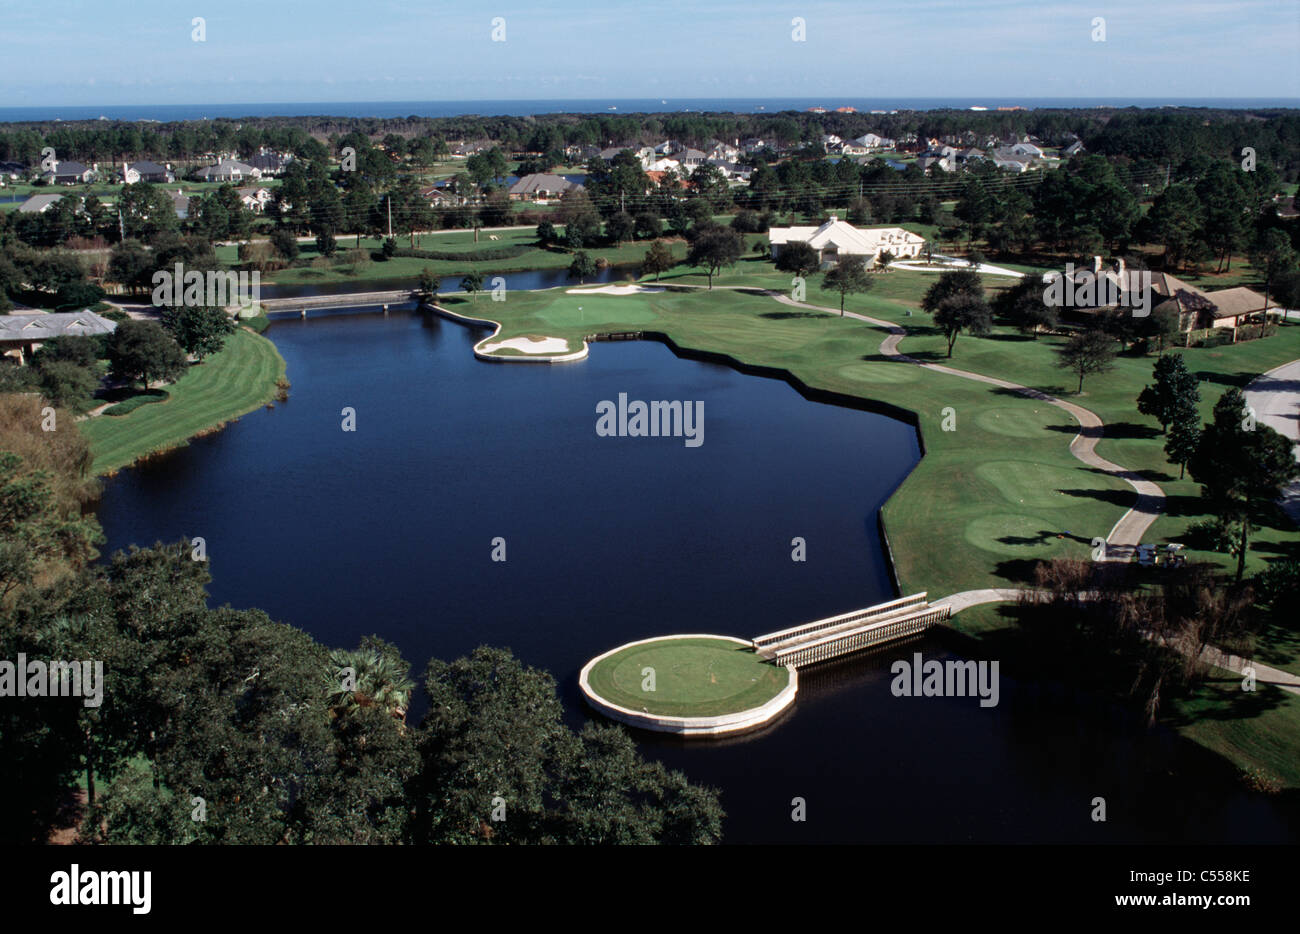 High angle view of a golf course, The Plantation Country Club, Jacksonville, Duval county, Florida, USA - Stock Image